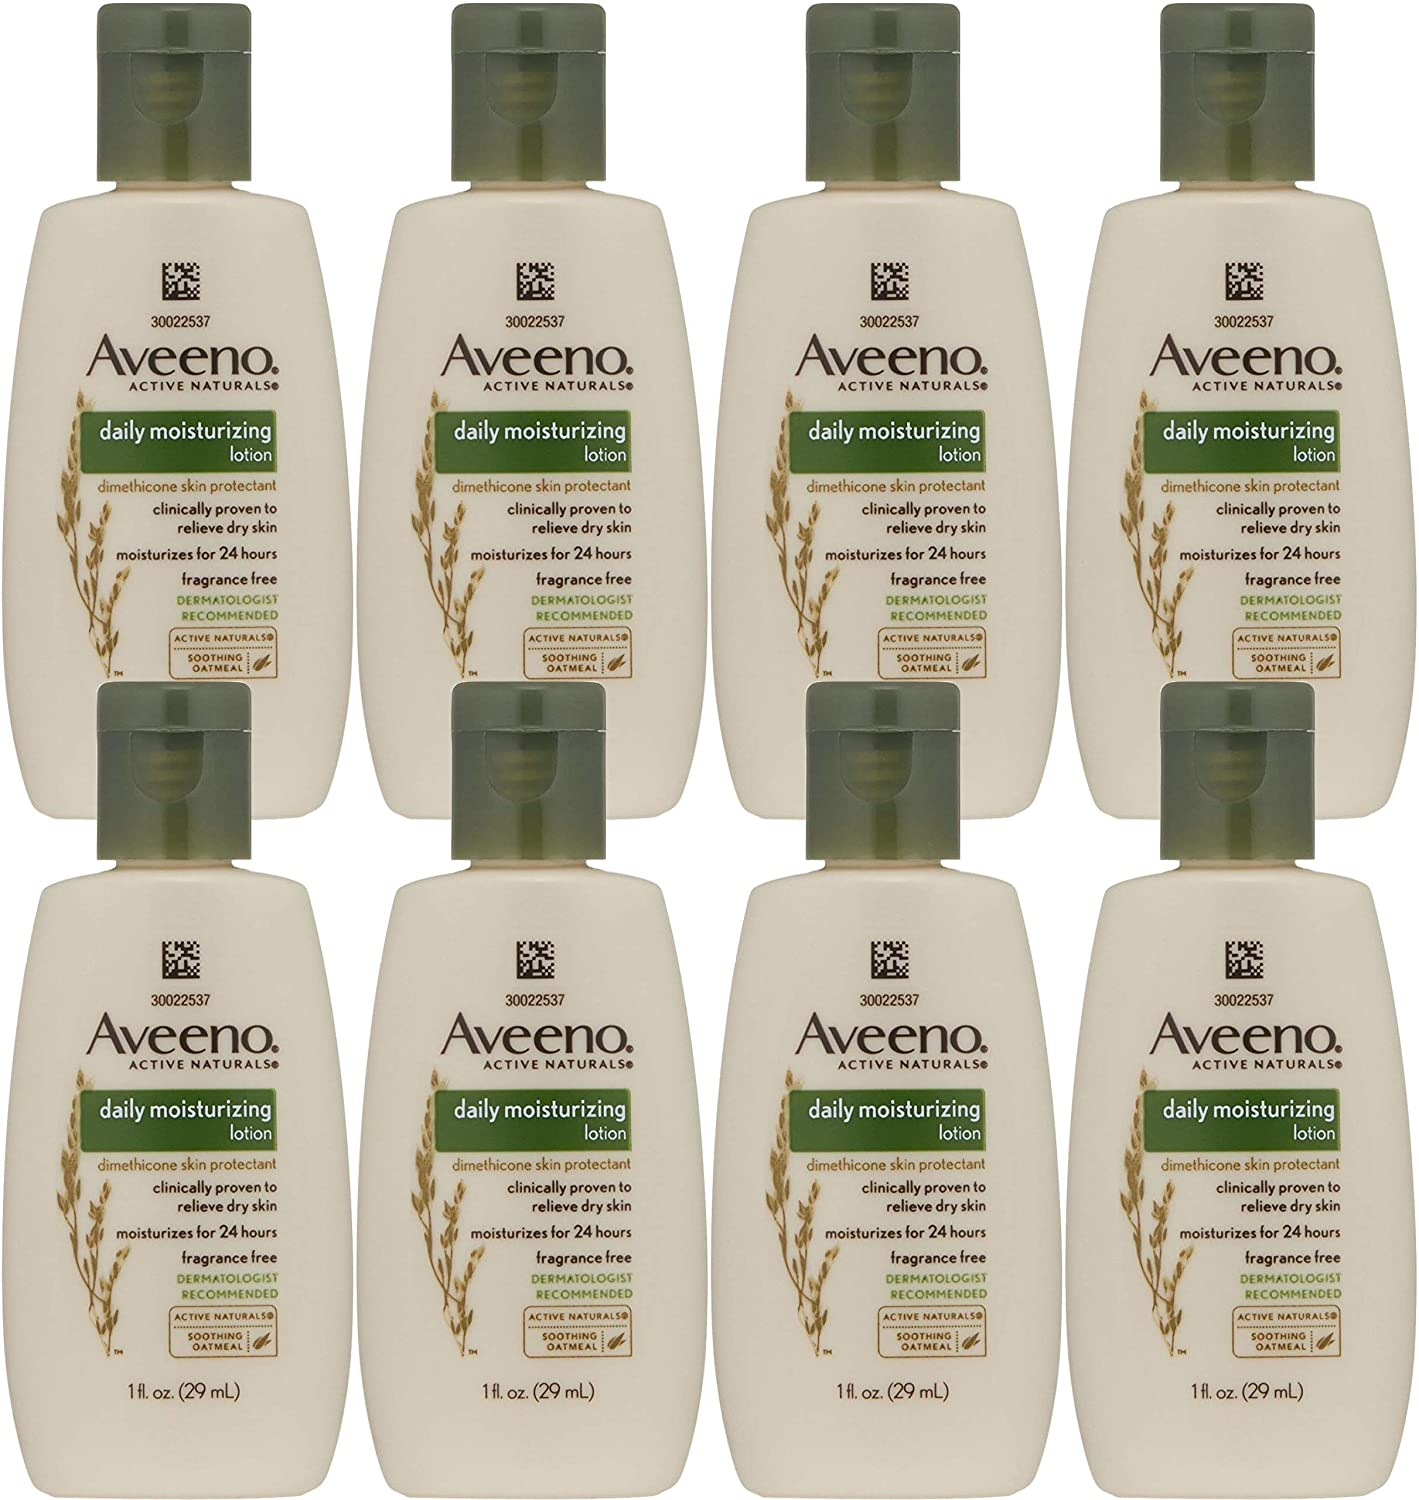 Aveeno Active Naturals Daily Moisturizing Lotion, Trial Size, 1 Ounce (Pack of 8)